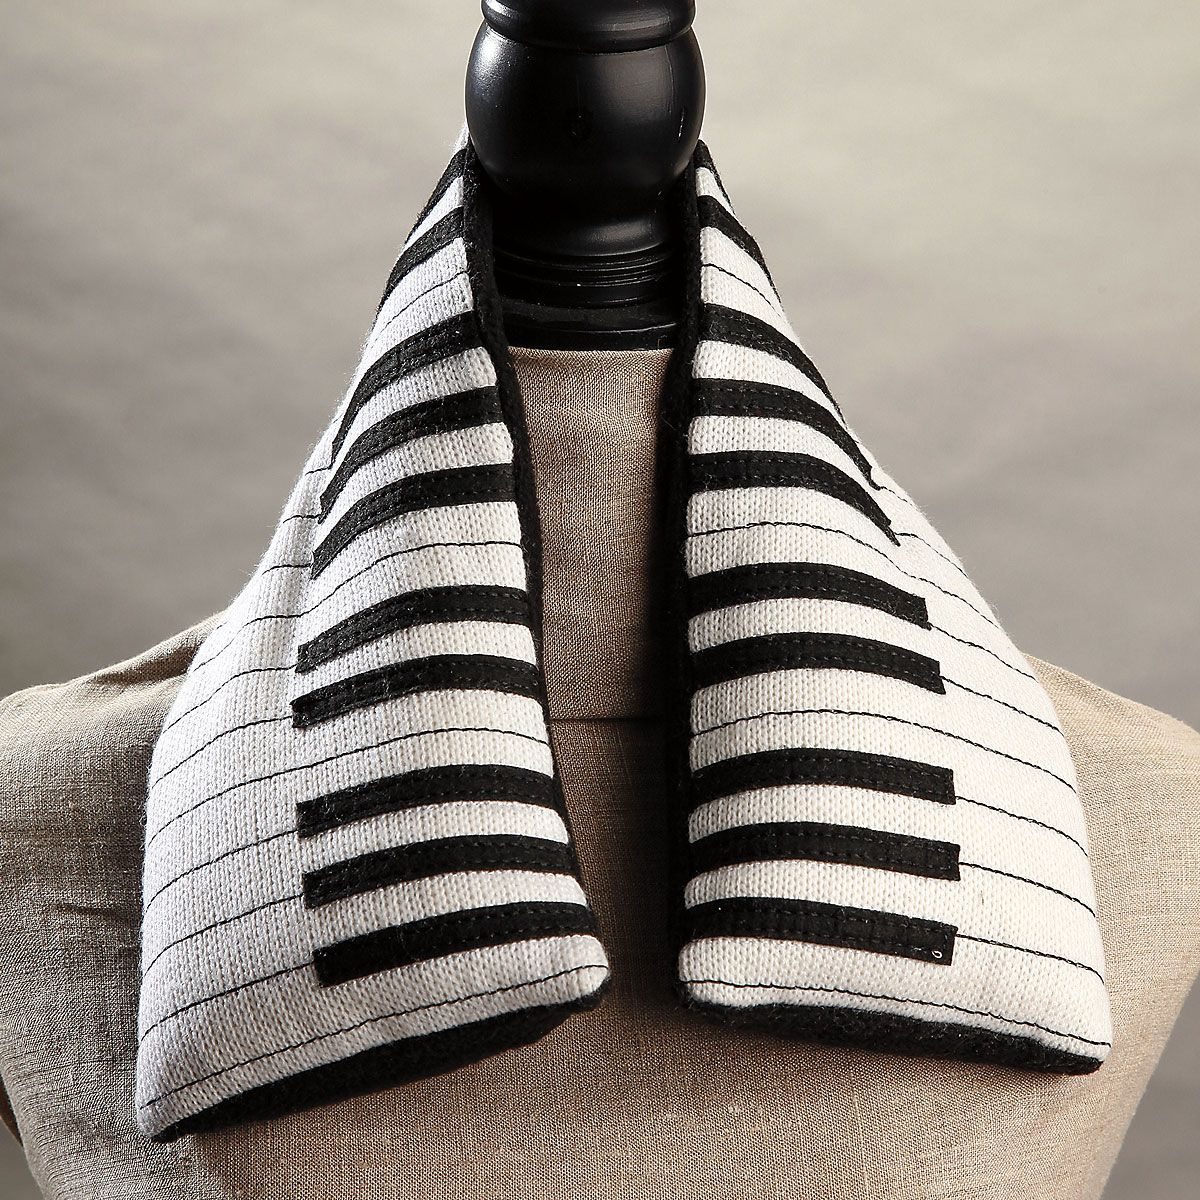 Piano Keyboard Neck Warmer